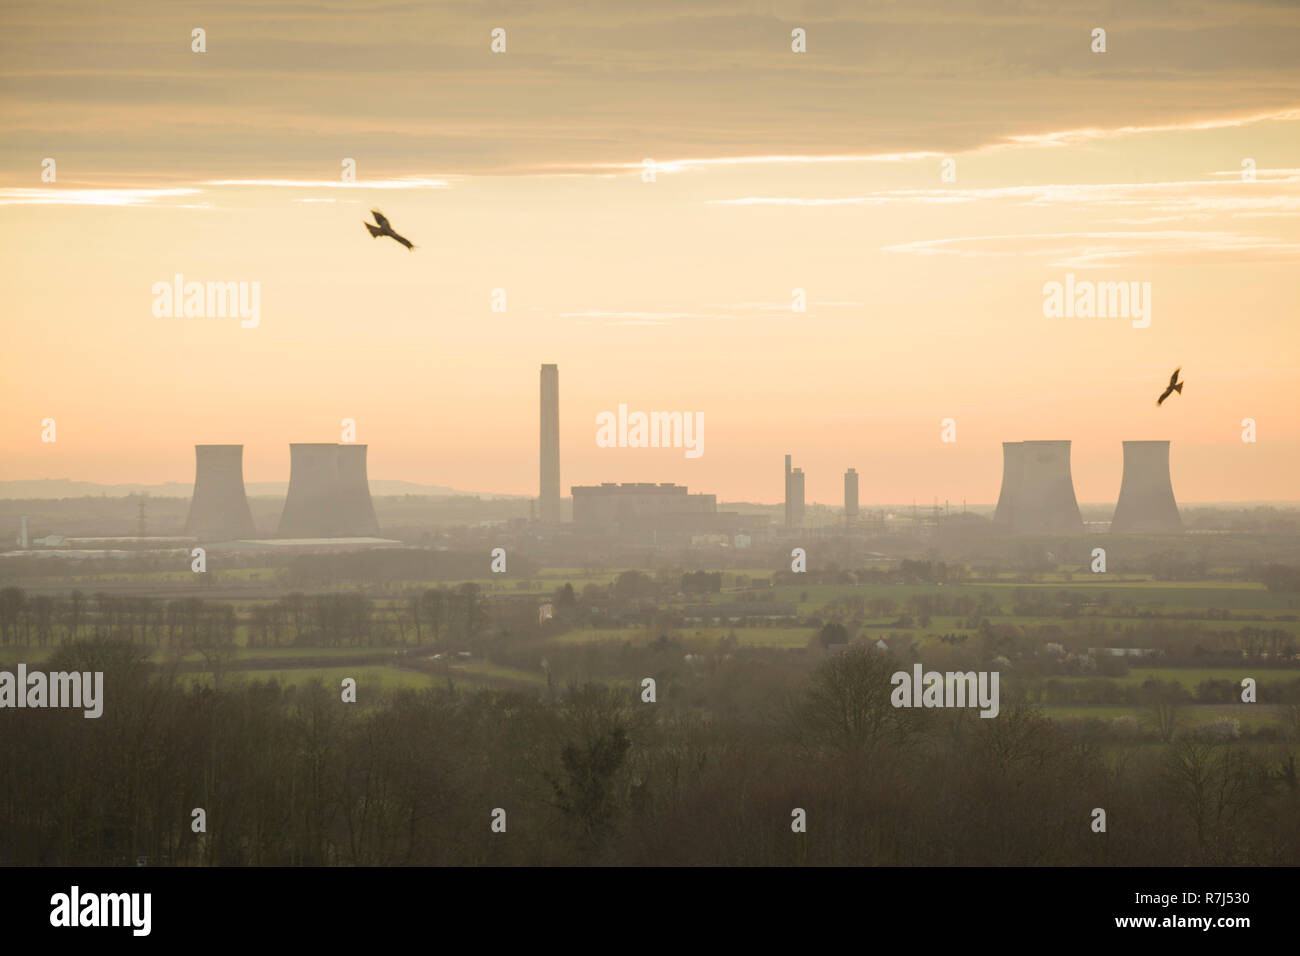 Red kites soar over Wittenham Clumps, Oxfordshire,  with Didcot Power Station behind, photographed just before the South cooling towers were demolishe - Stock Image